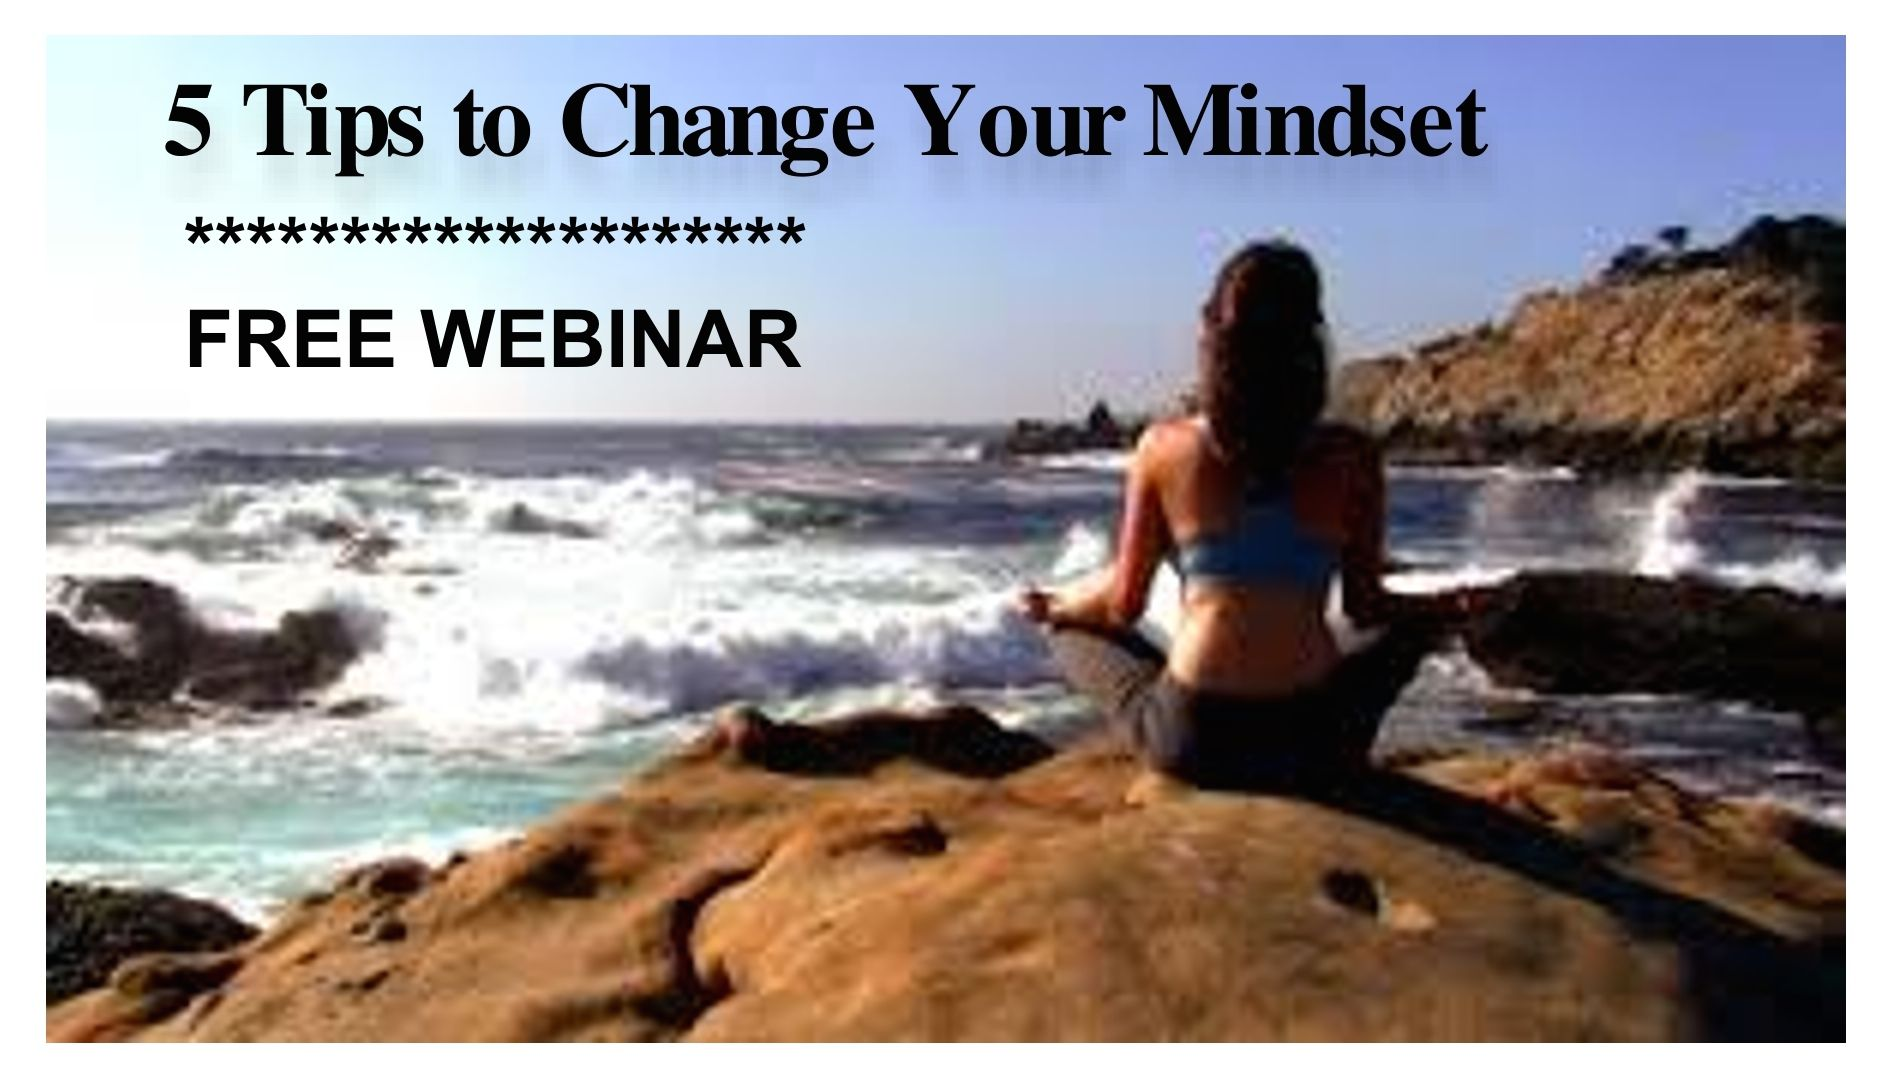 Get the FREE Webinar here http://madmimi.com/signups/149284/join